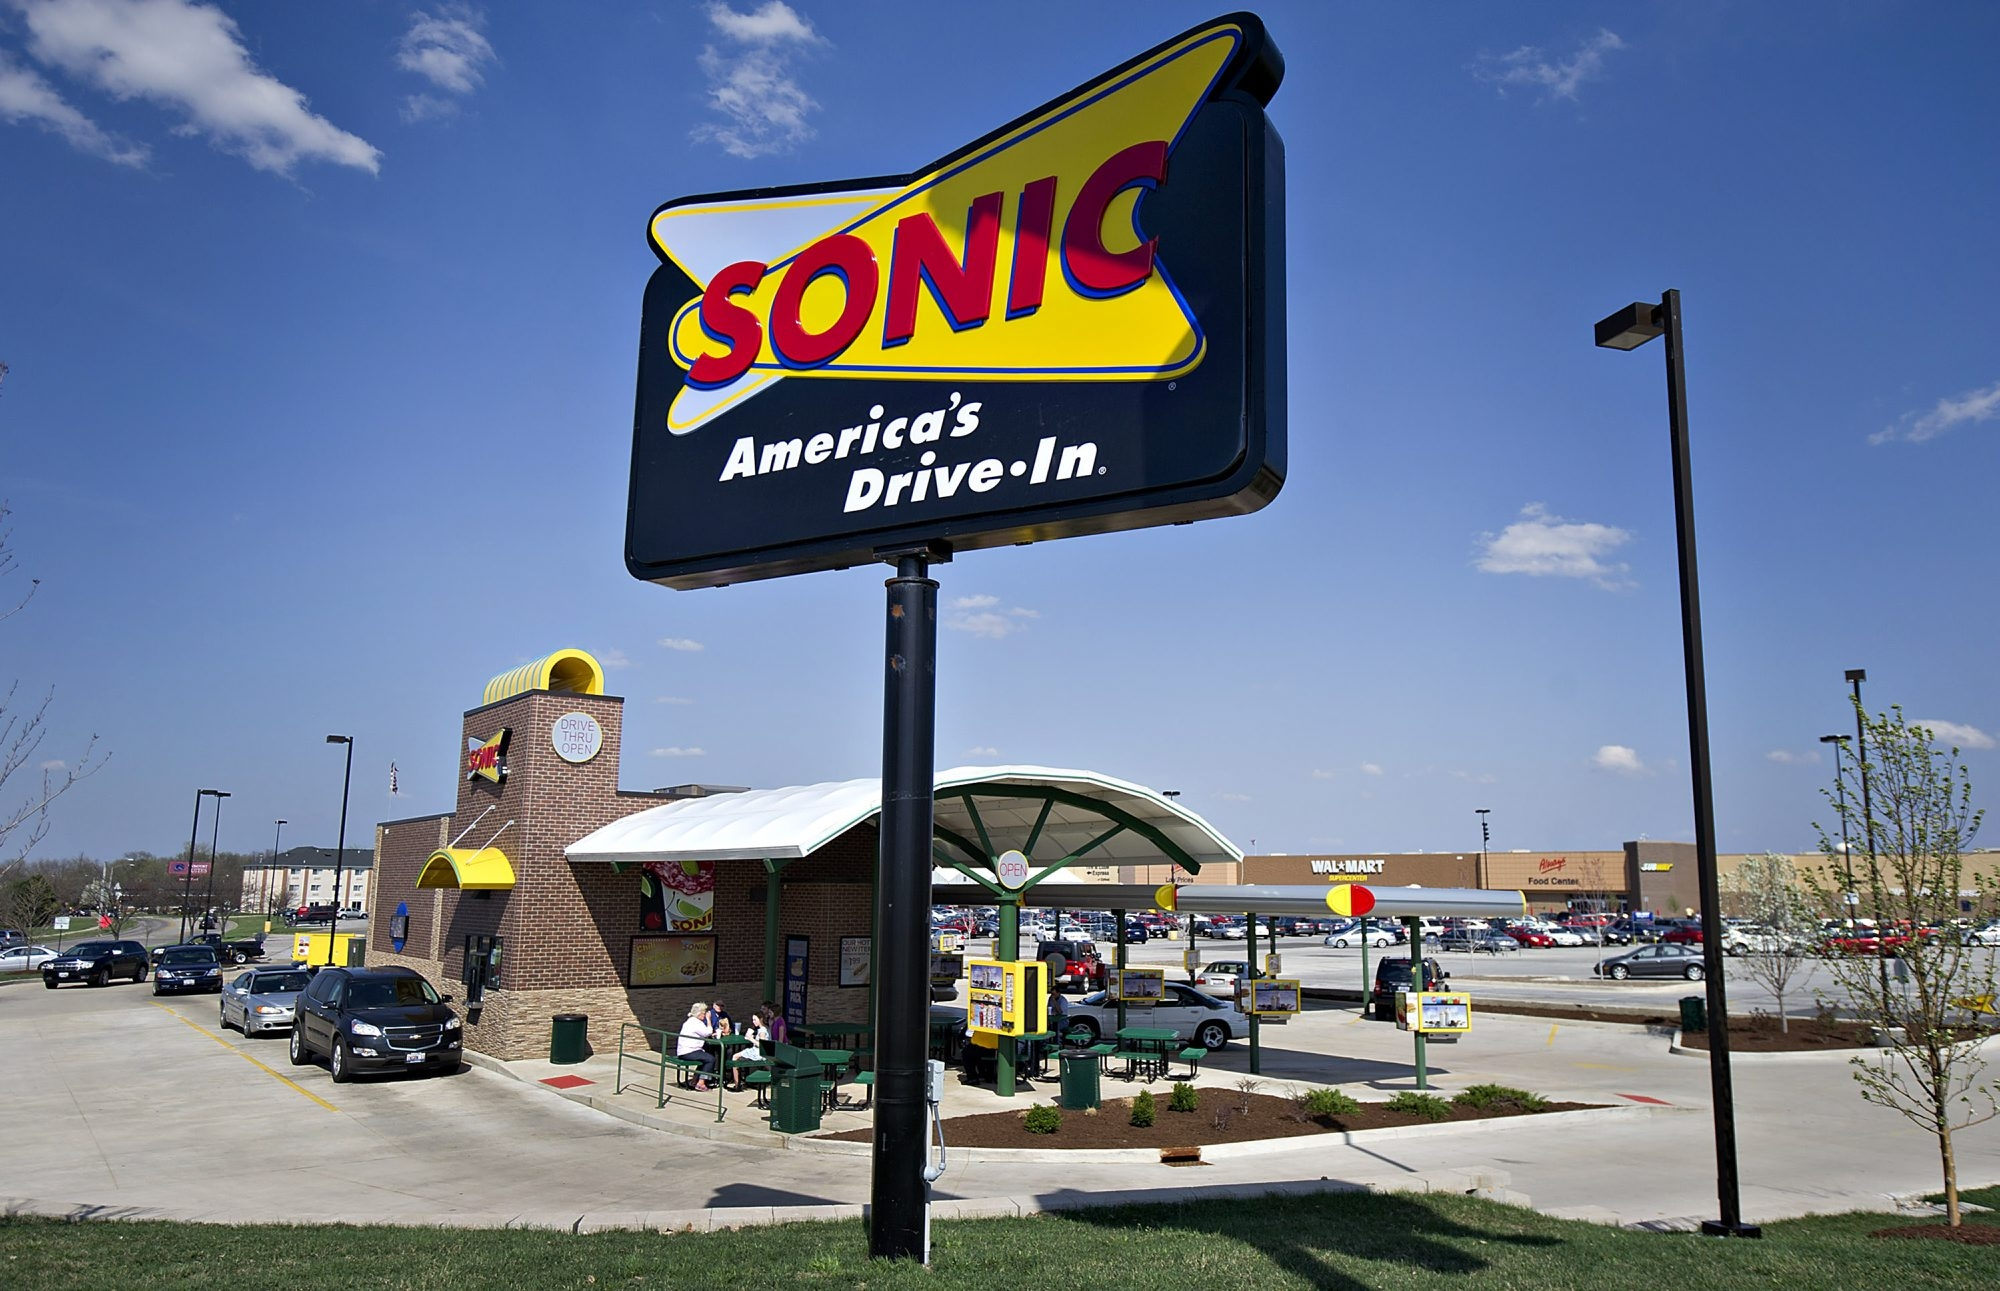 Sonic Drive-In has more than 3,500 restaurants in the country and also has announced plans to open six in the Rochester area.